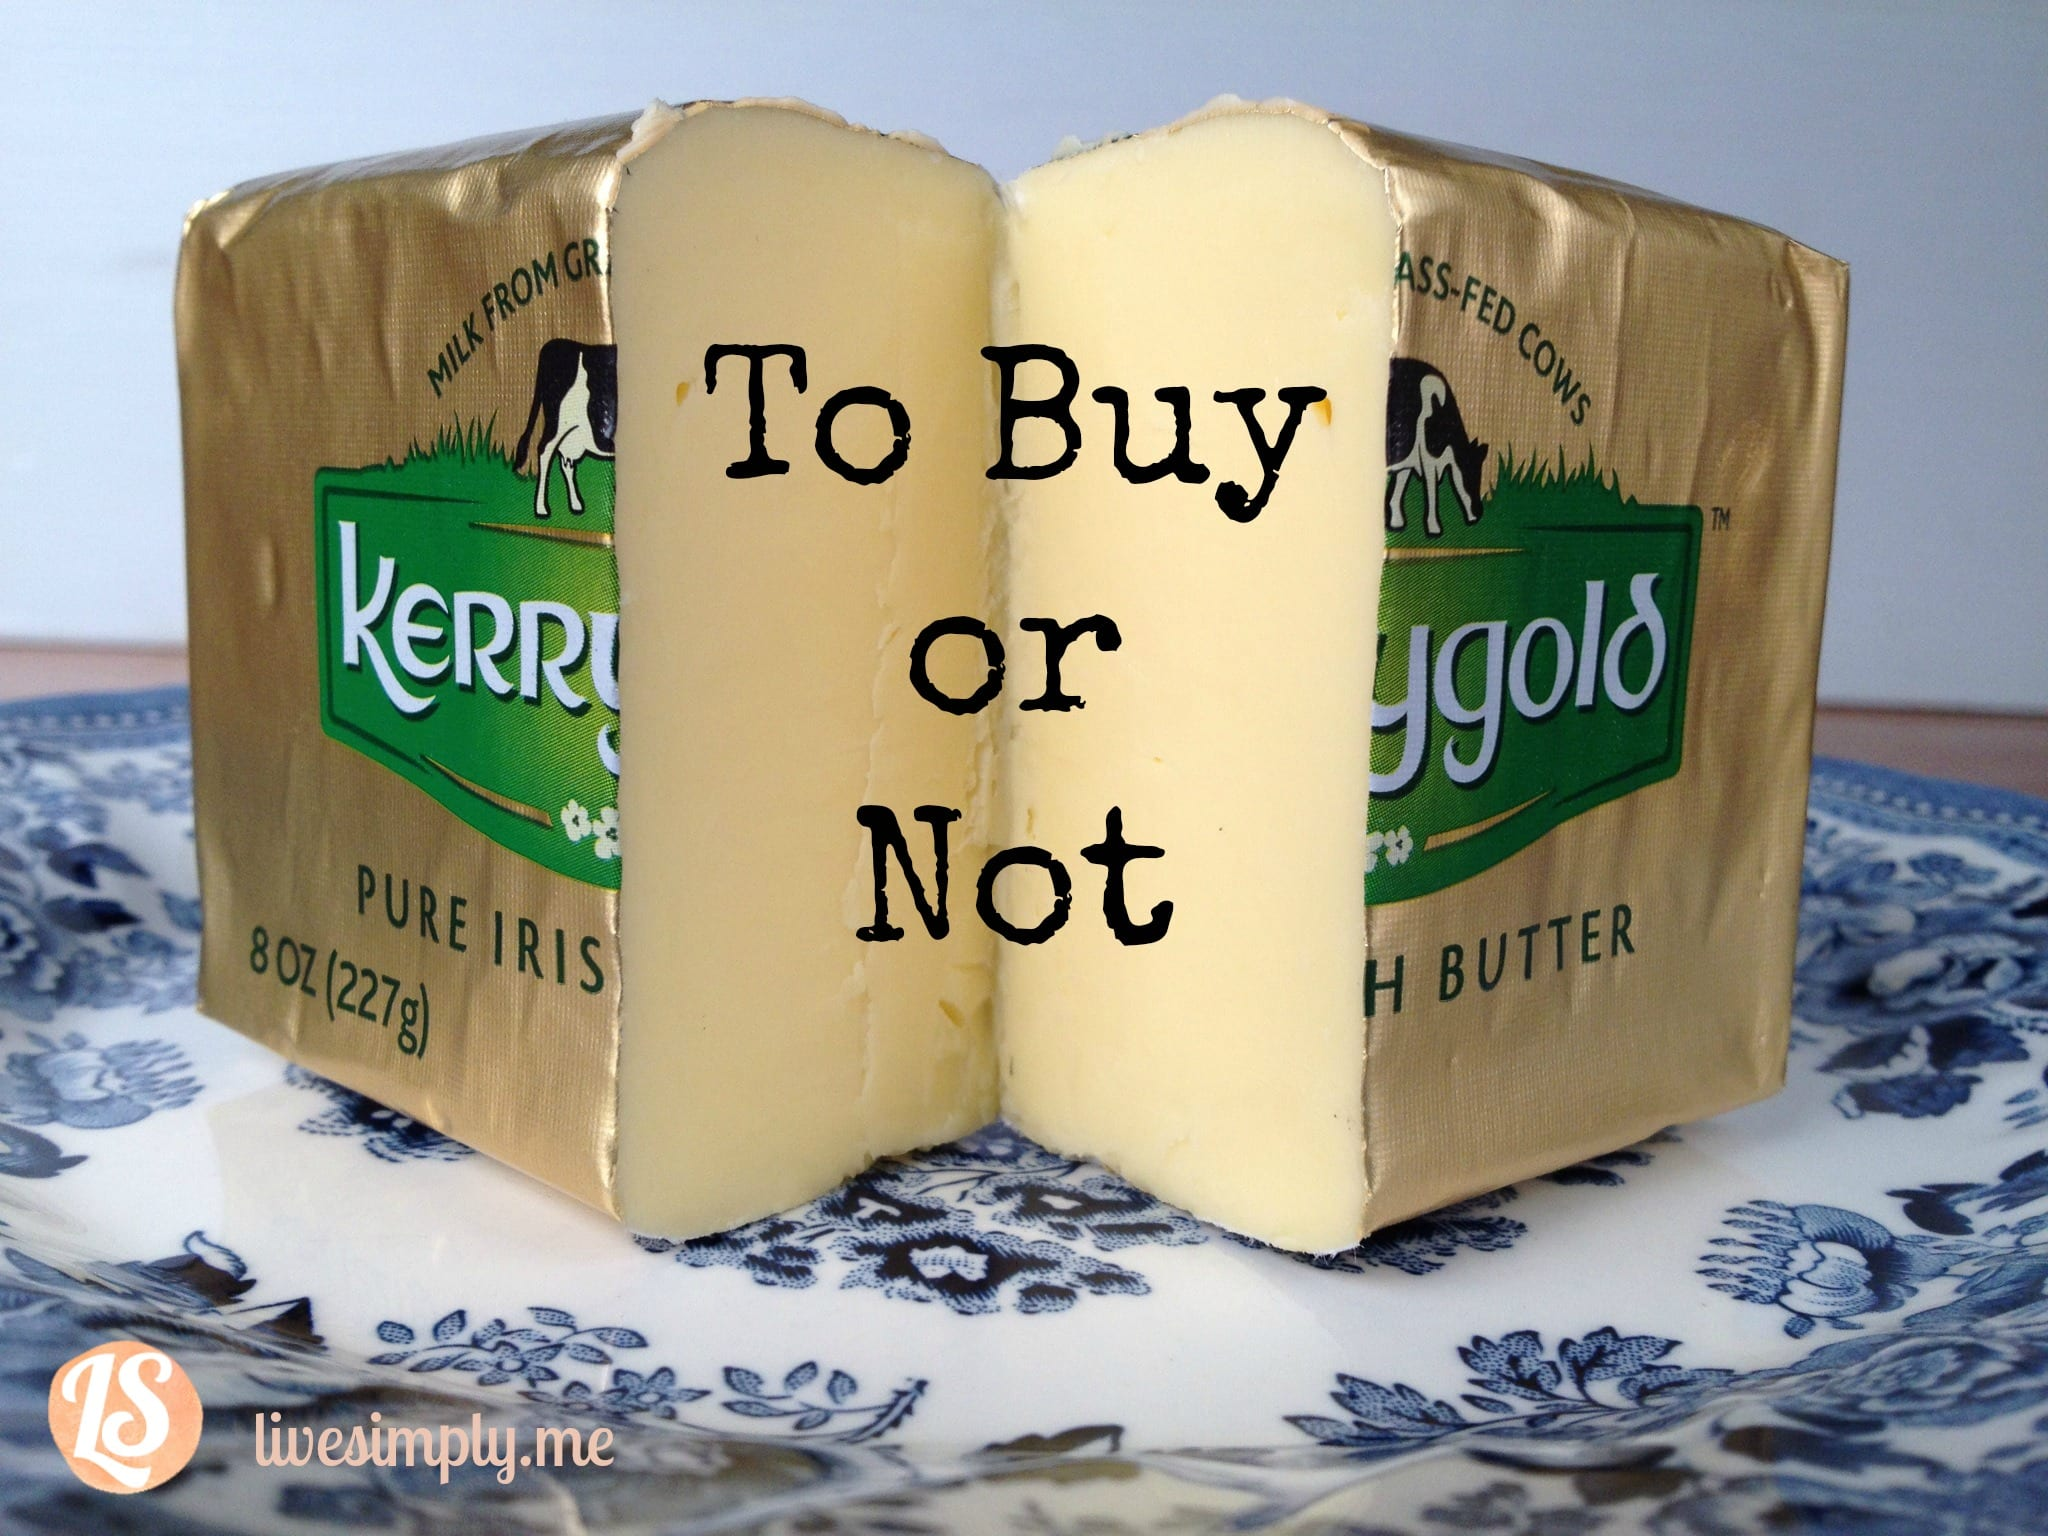 Kerrygold Butter: To Buy or Not - Live Simply